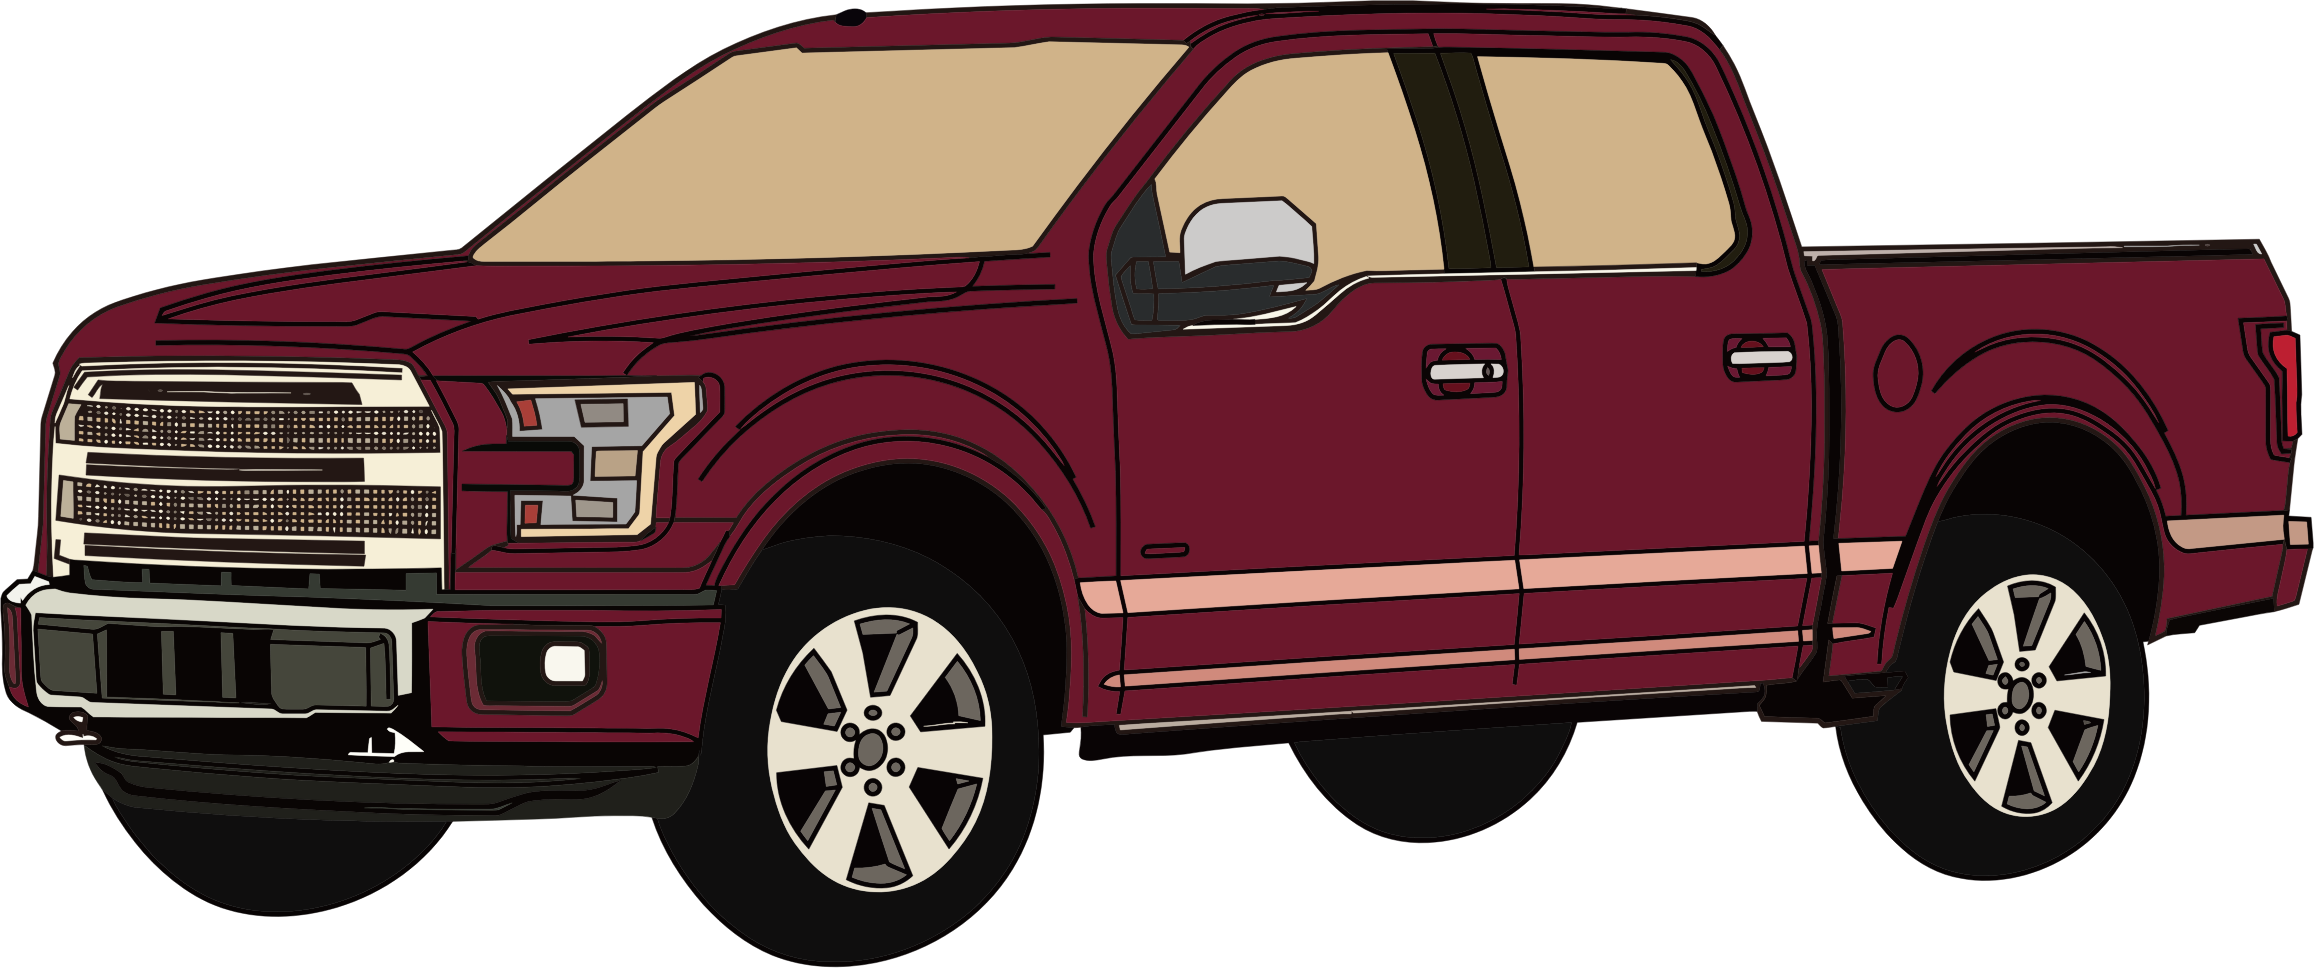 Red clipart pick up truck #3